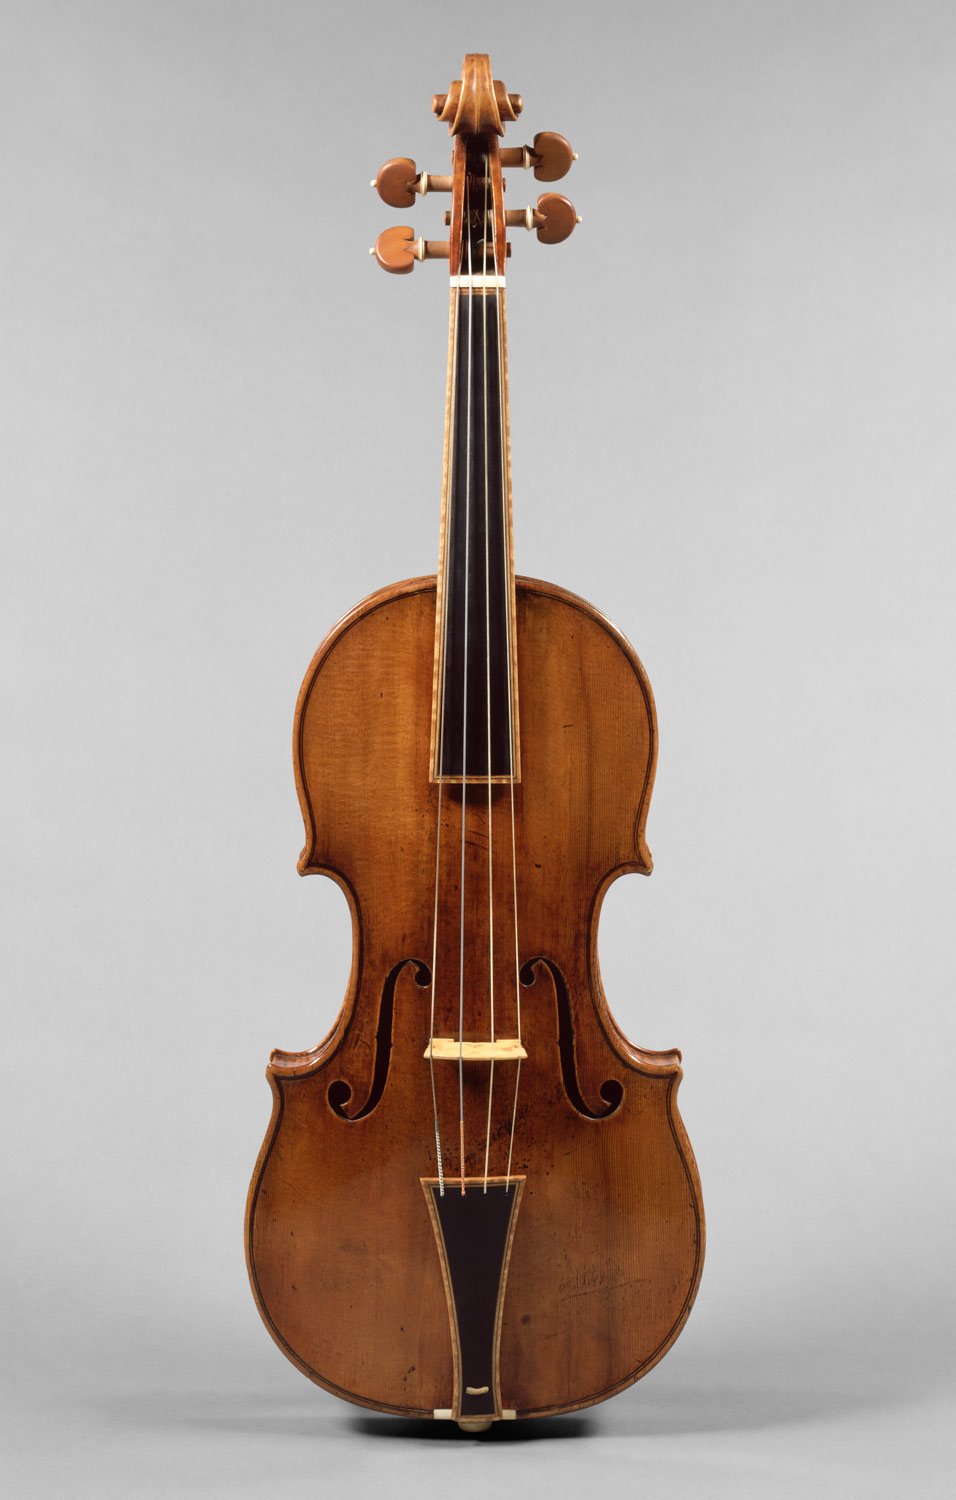 The Gould Violin